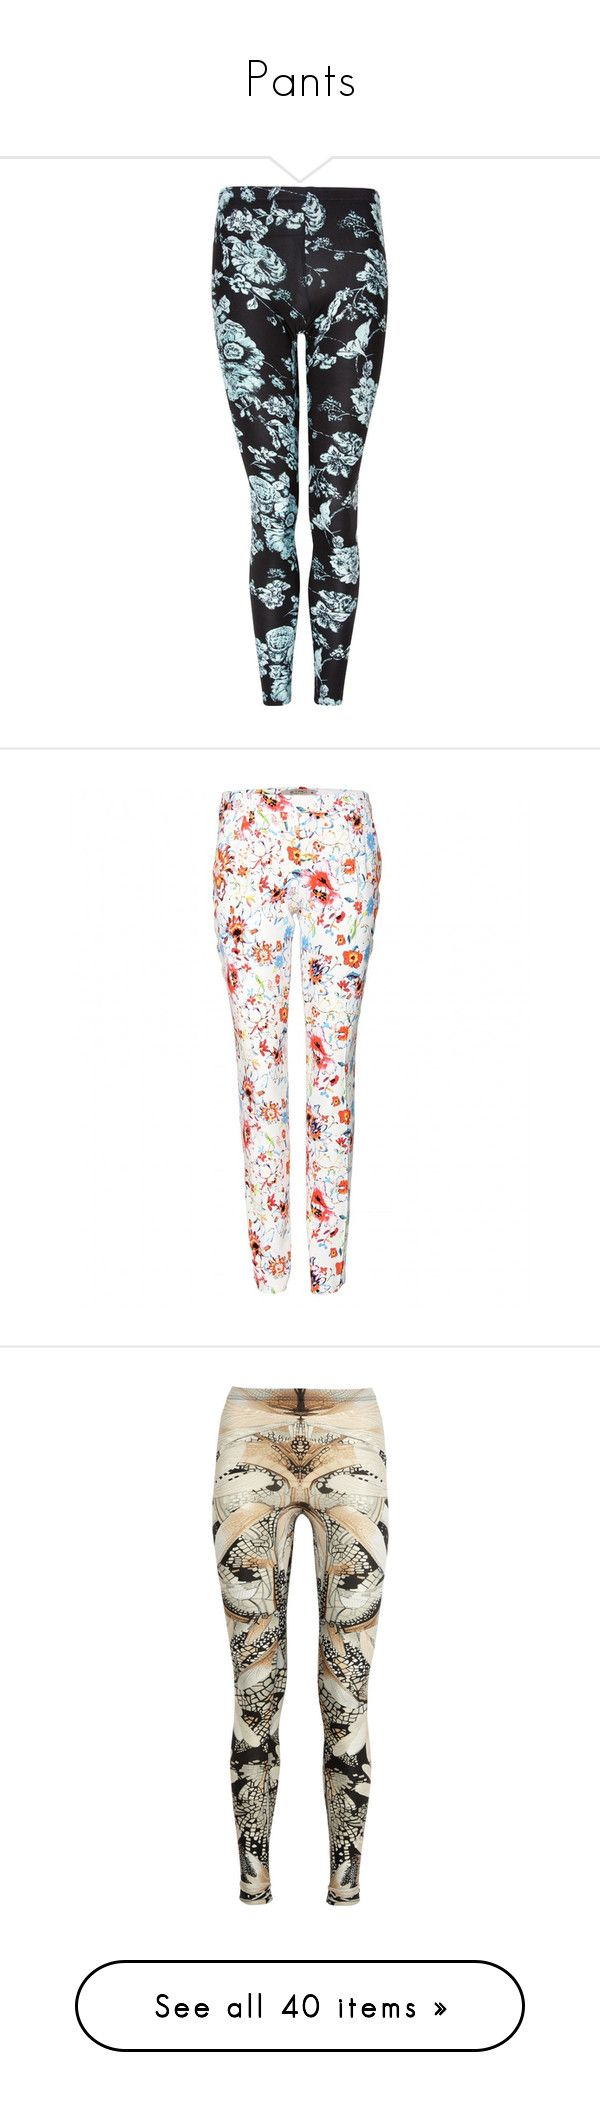 """Pants"" by dani-chic143 ❤ liked on Polyvore featuring pants, leggings, bottoms, jeans, calças, mint, tribal print leggings, floral trousers, flower print leggings and full tilt"